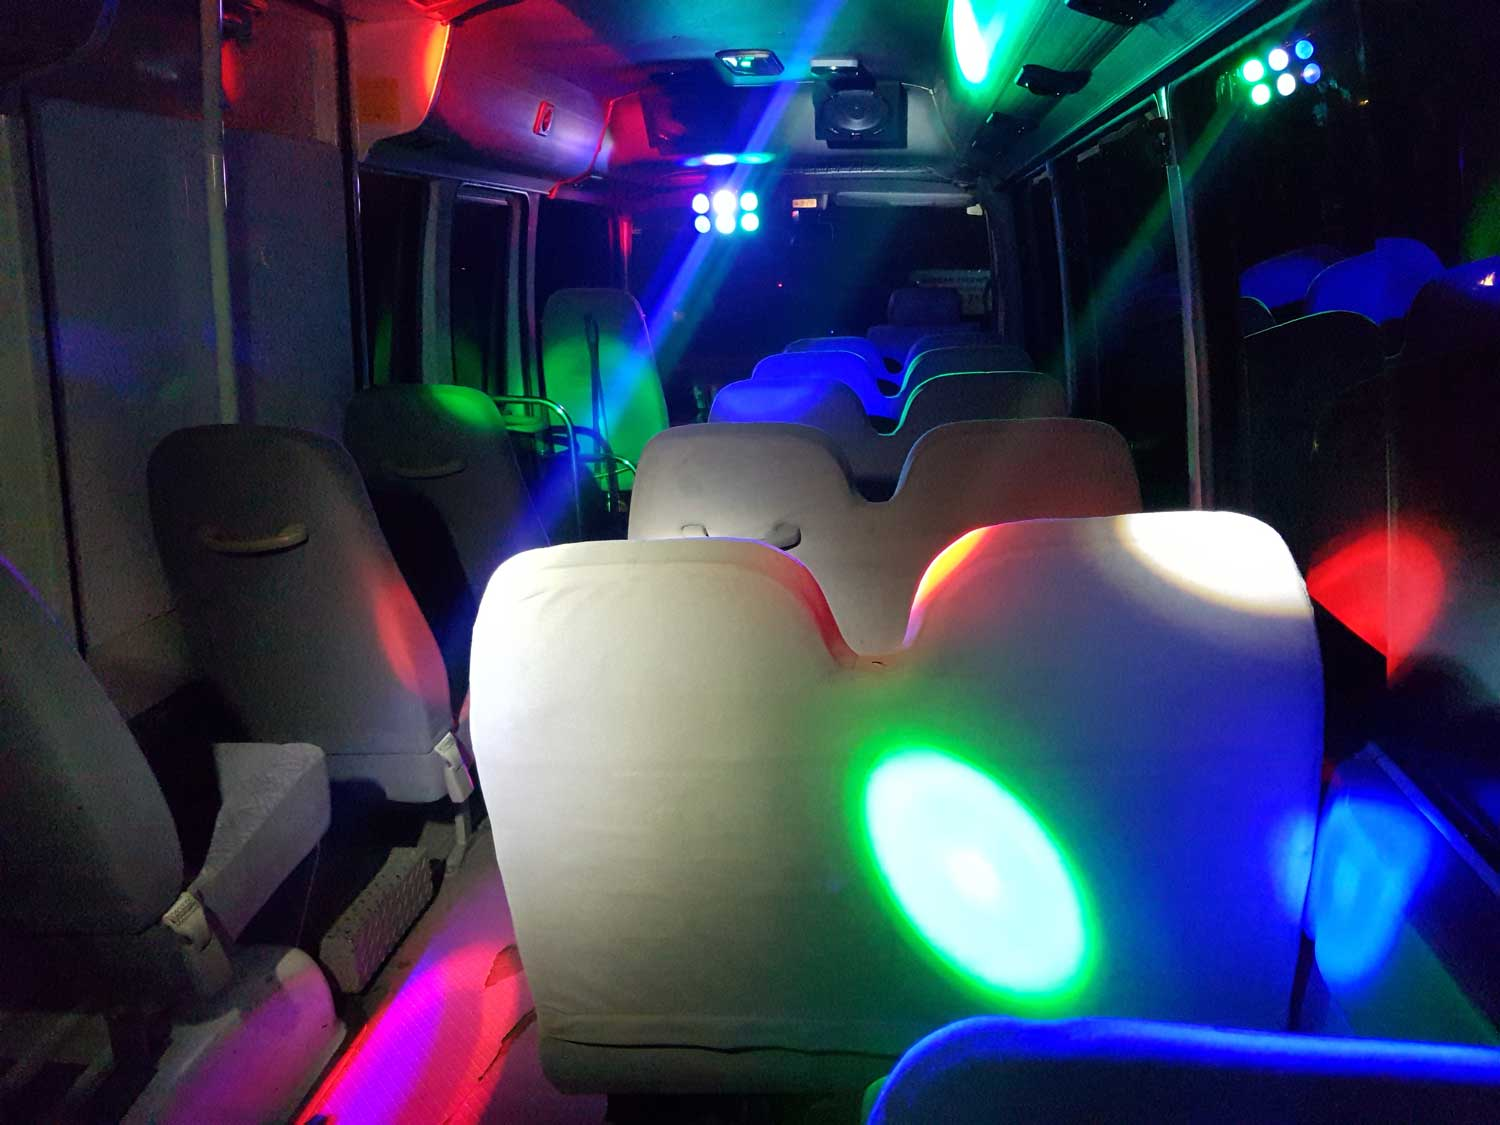 small party bus lights